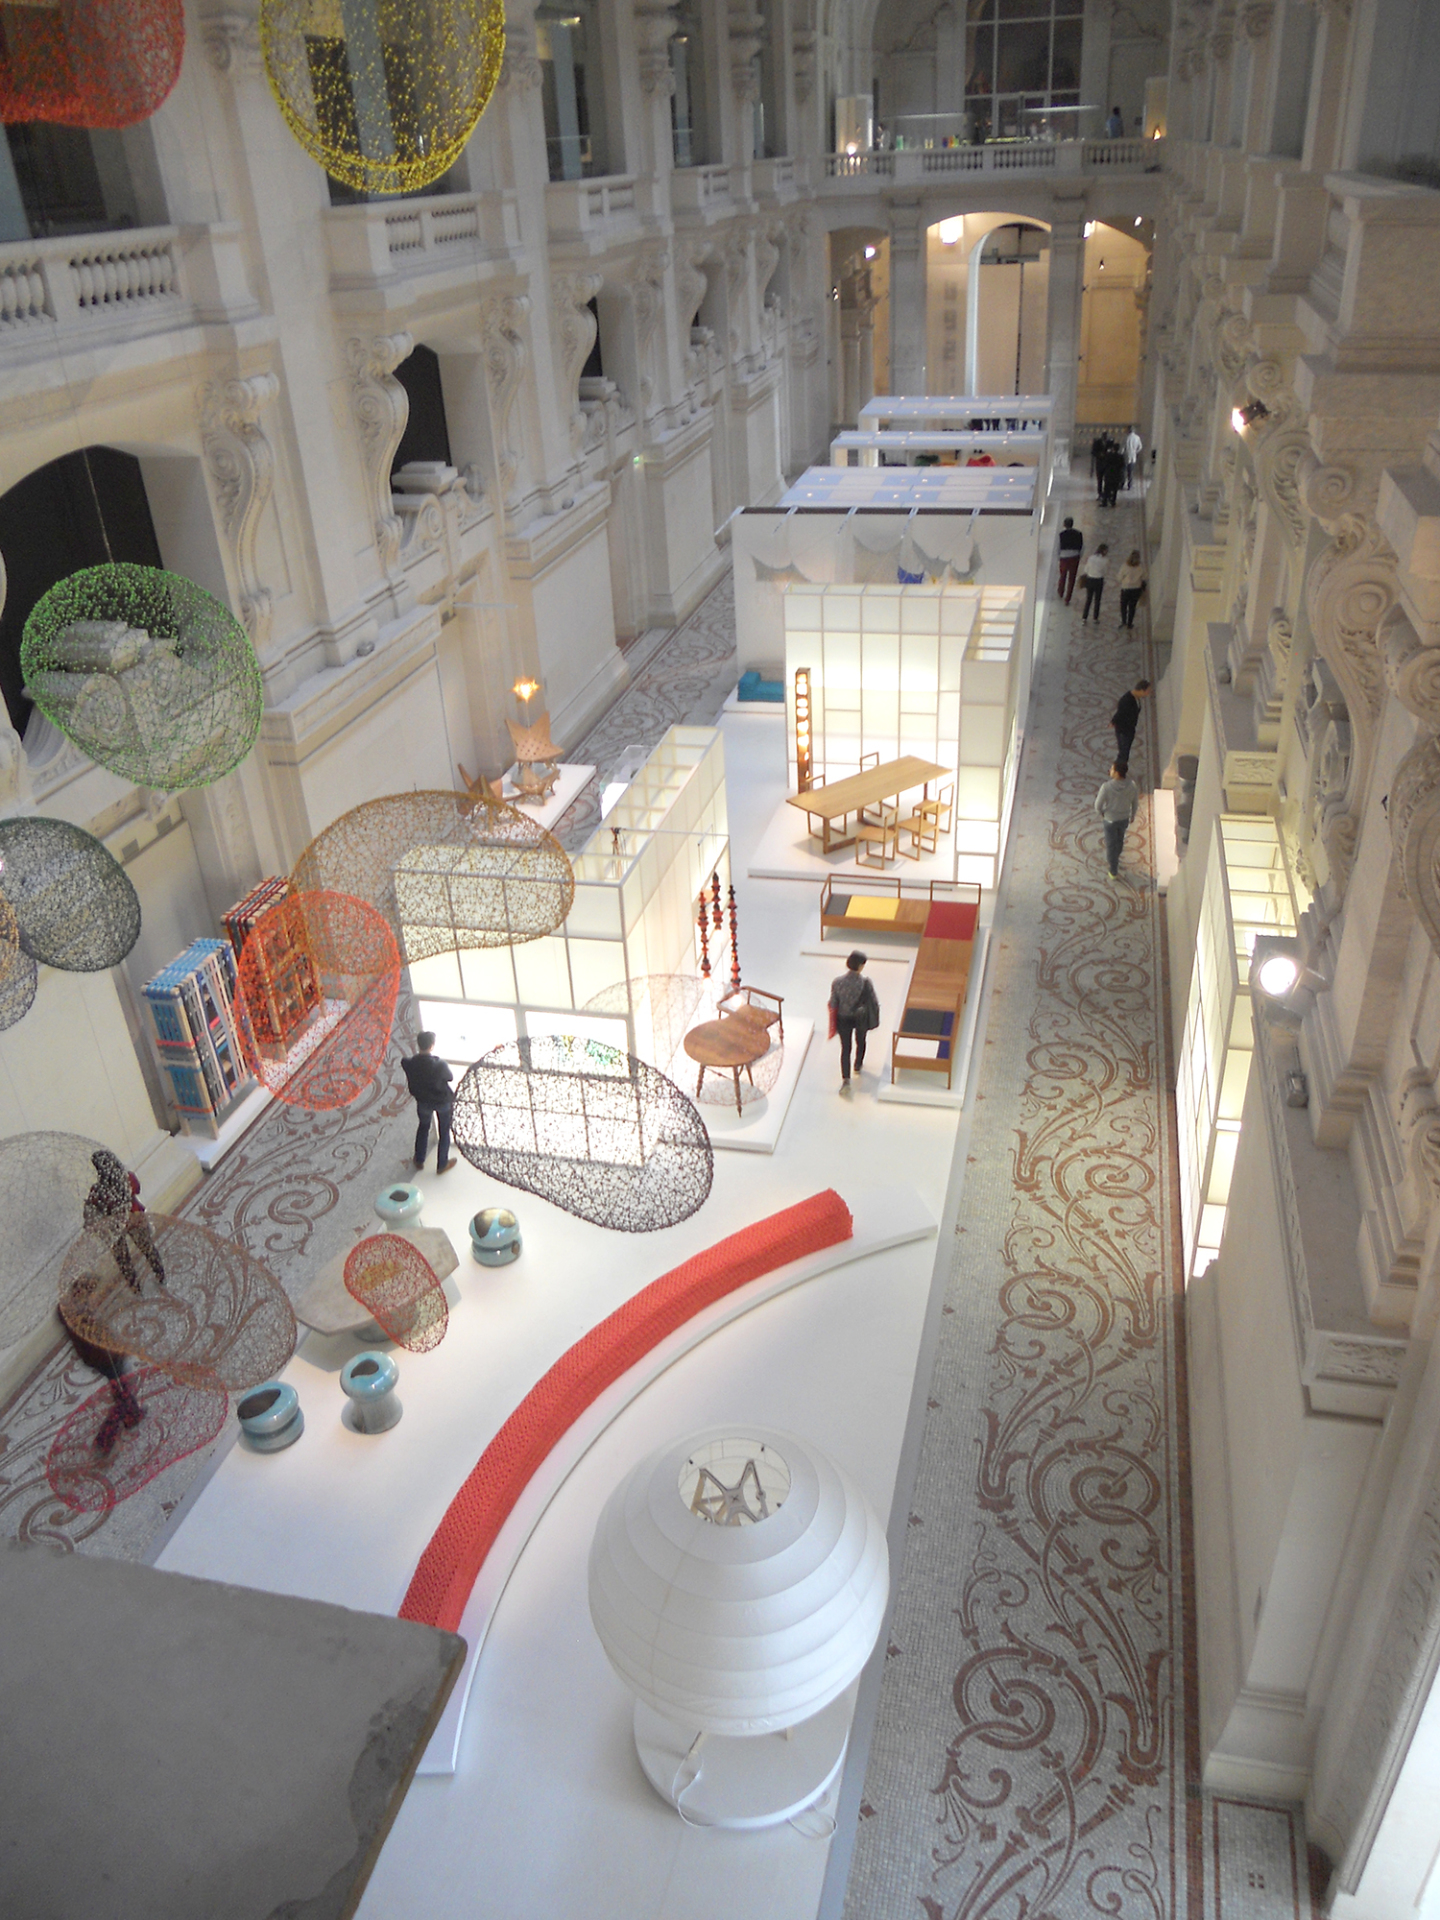 View of Exhibition from above